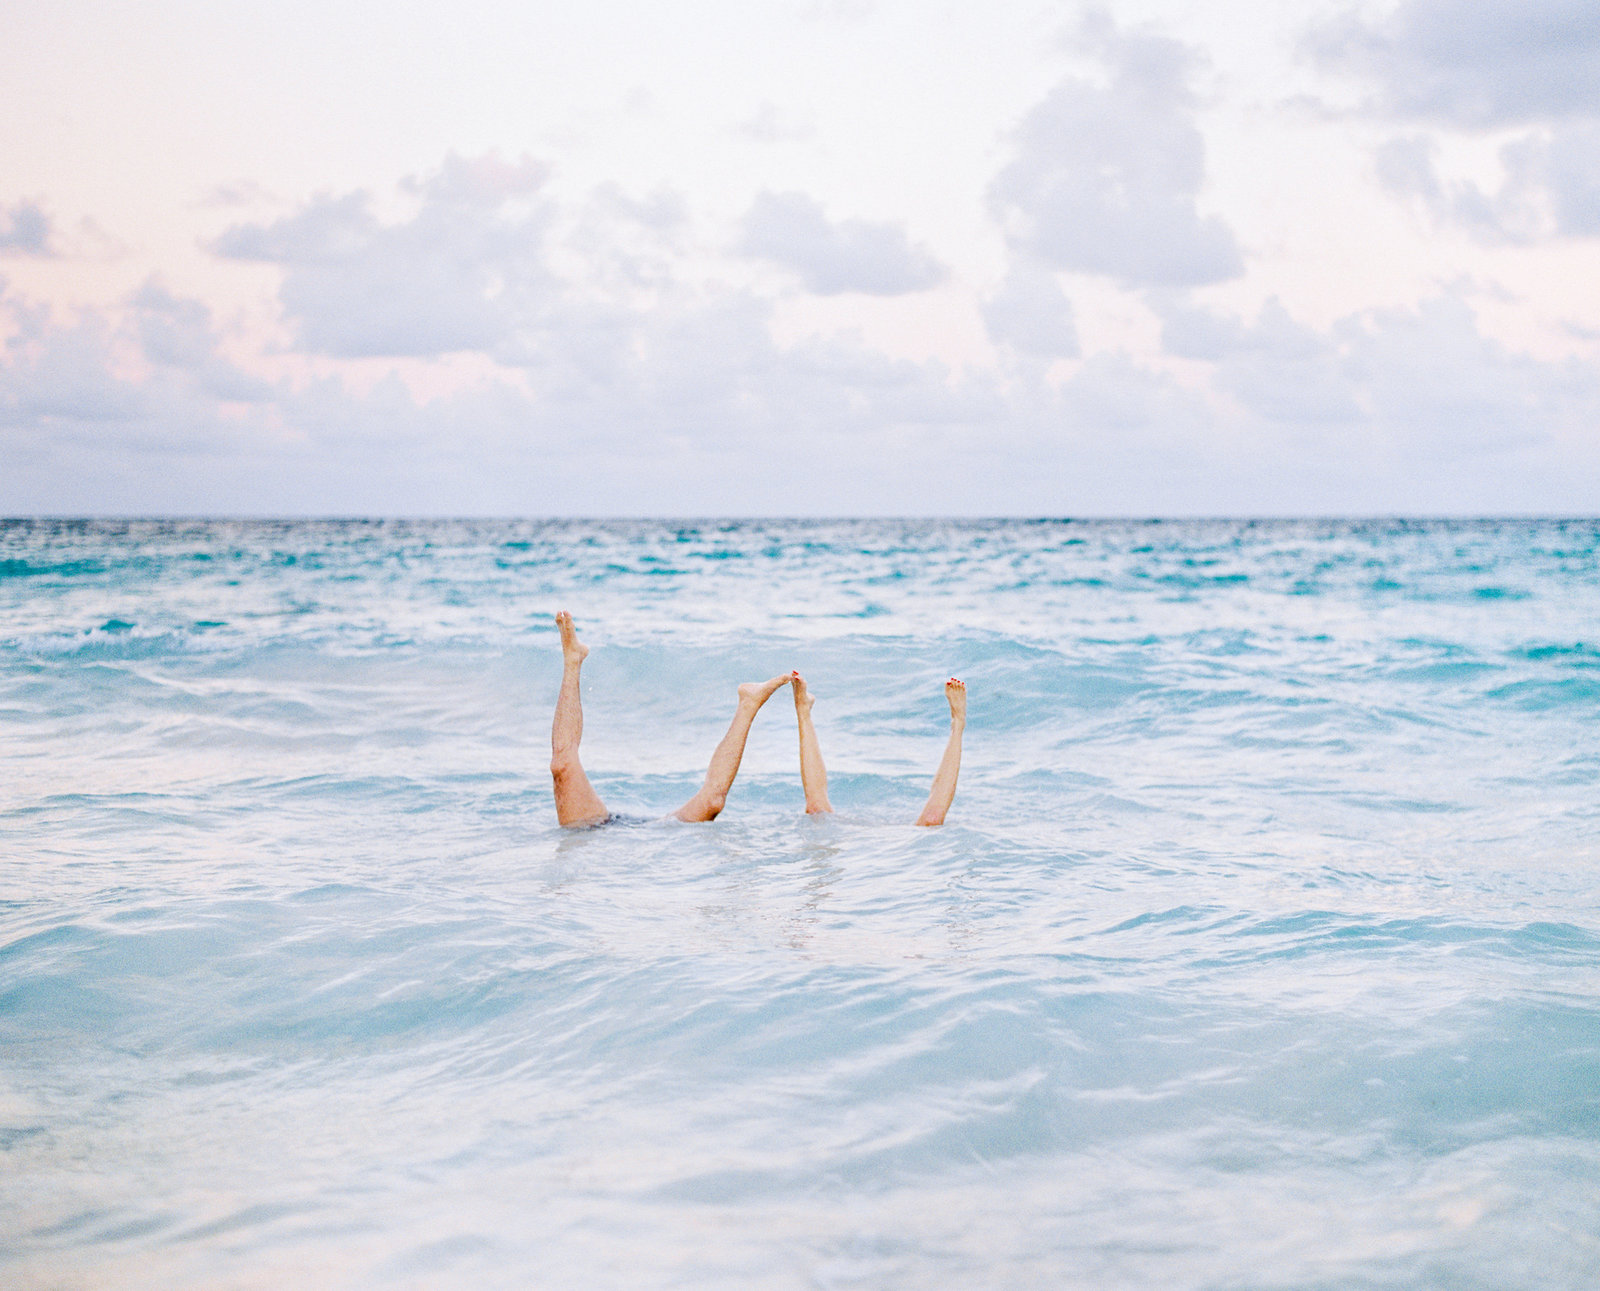 20171109-Pura-Soul-Photo-Engagement-Bahamas-Gillian-Eddy-Film-27